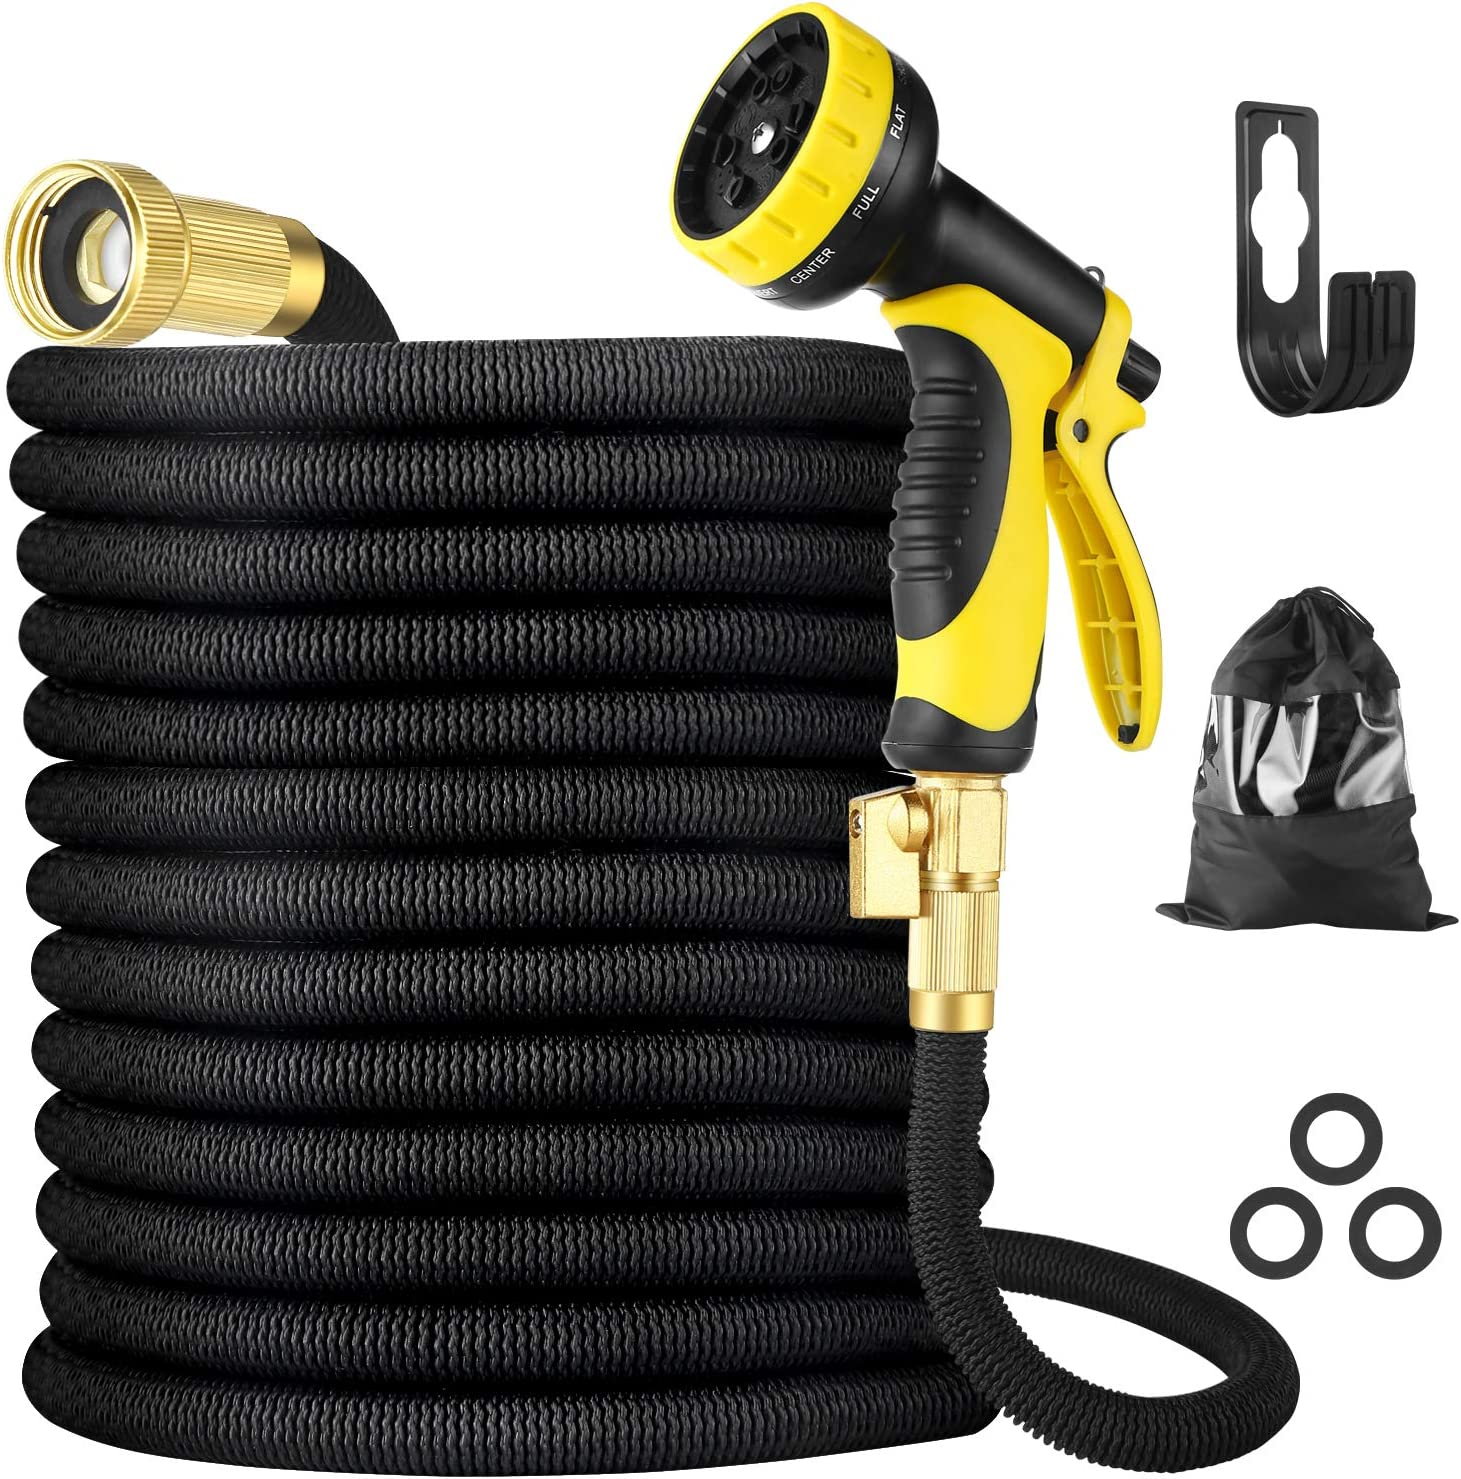 """BBwin Expandable Garden Hose 25ft 10 Function Spray Nozzle Flexible Water Hose with 3/4"""" Solid Brass Fittings Leakproof Design"""